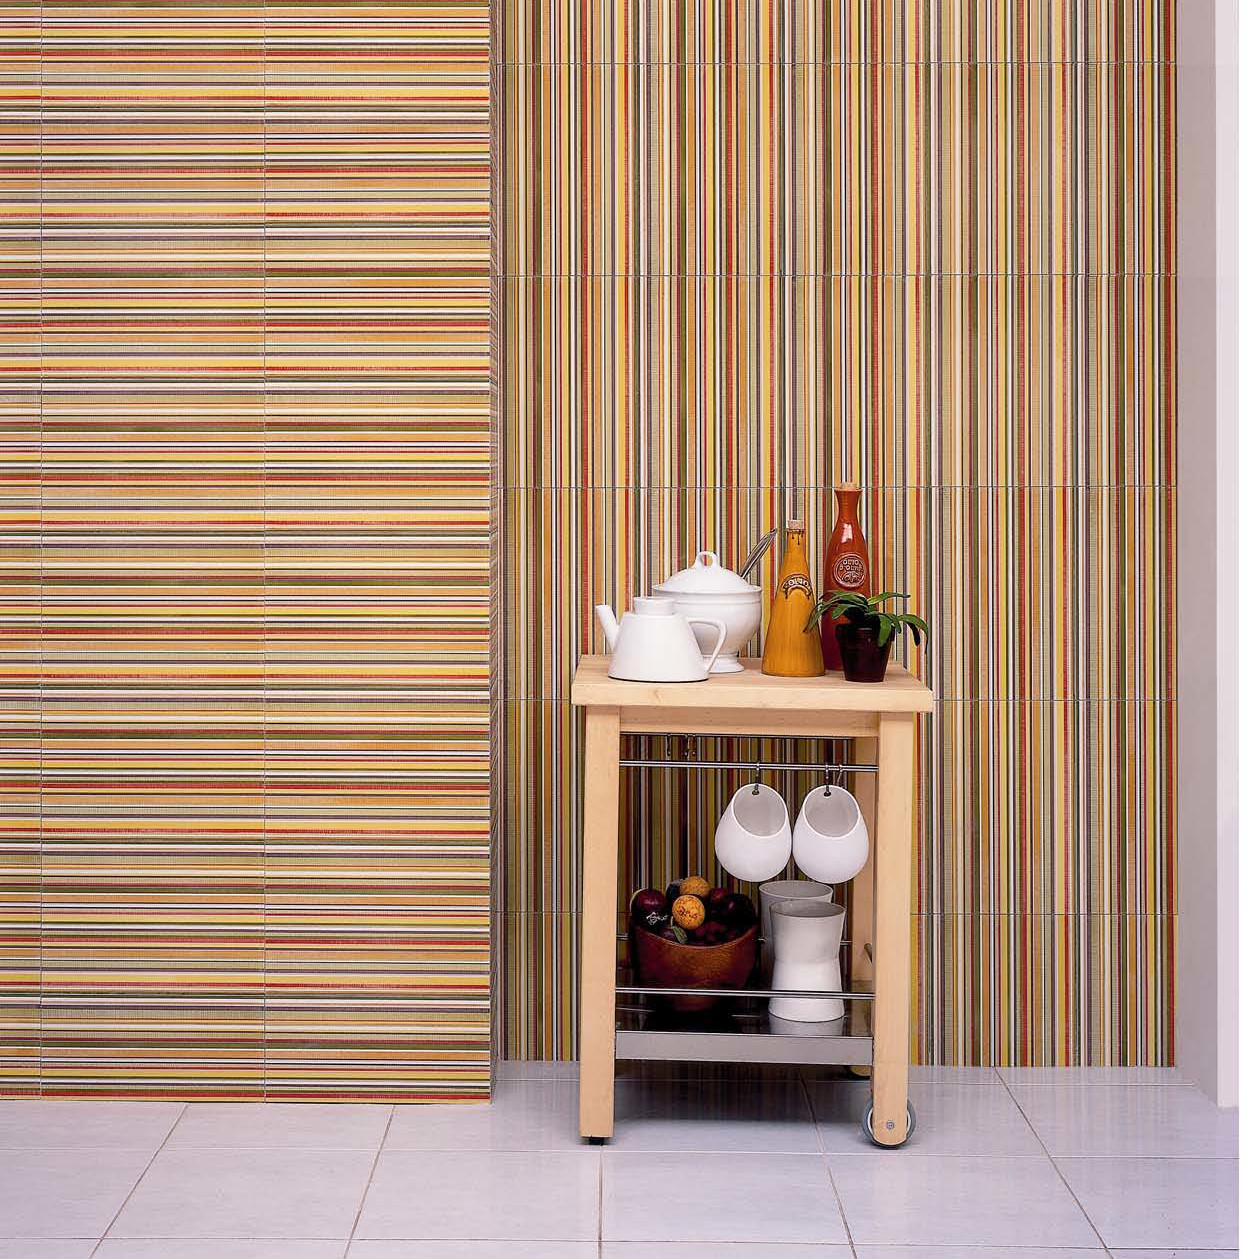 Aquarelle Ceramic Wall Tile In Red Insert Stripes By Interceramic Tile  Matched With White Tile Floor